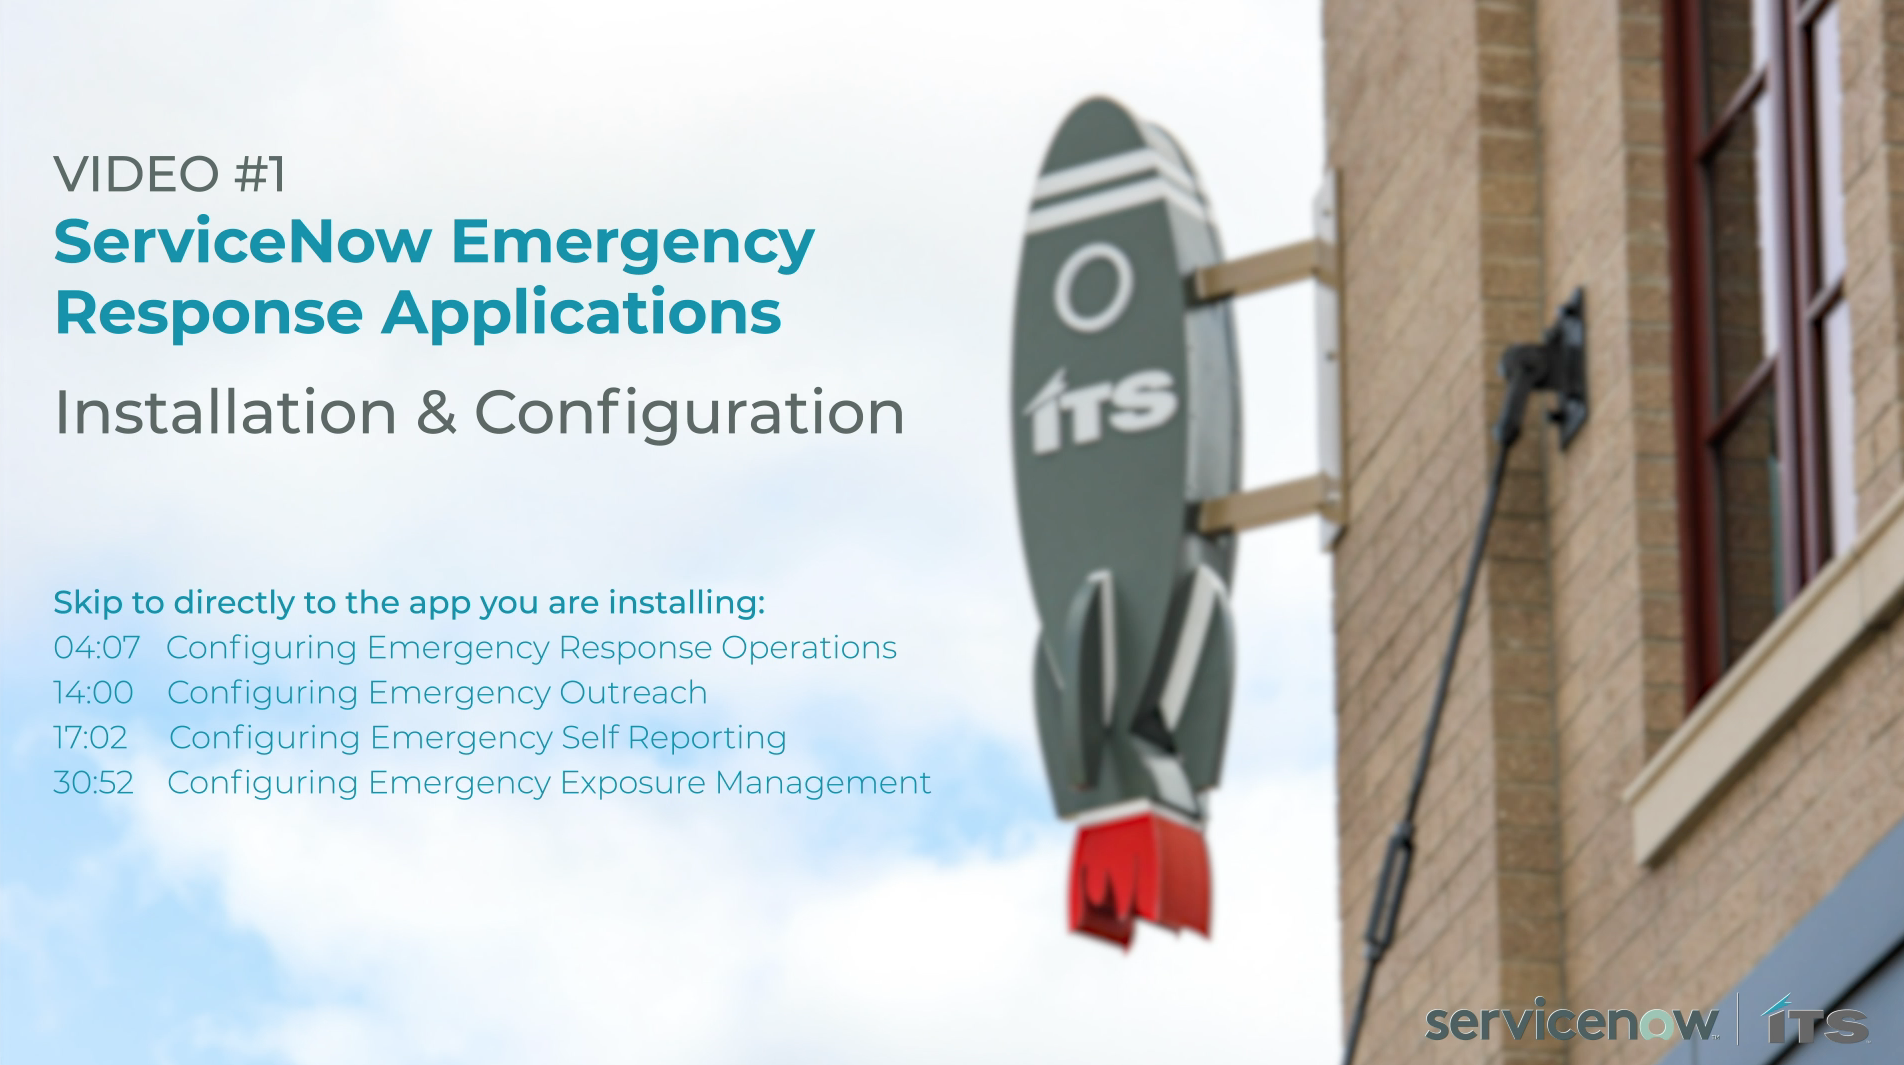 Installation and configuration of ServiceNow Emergency Response Apps